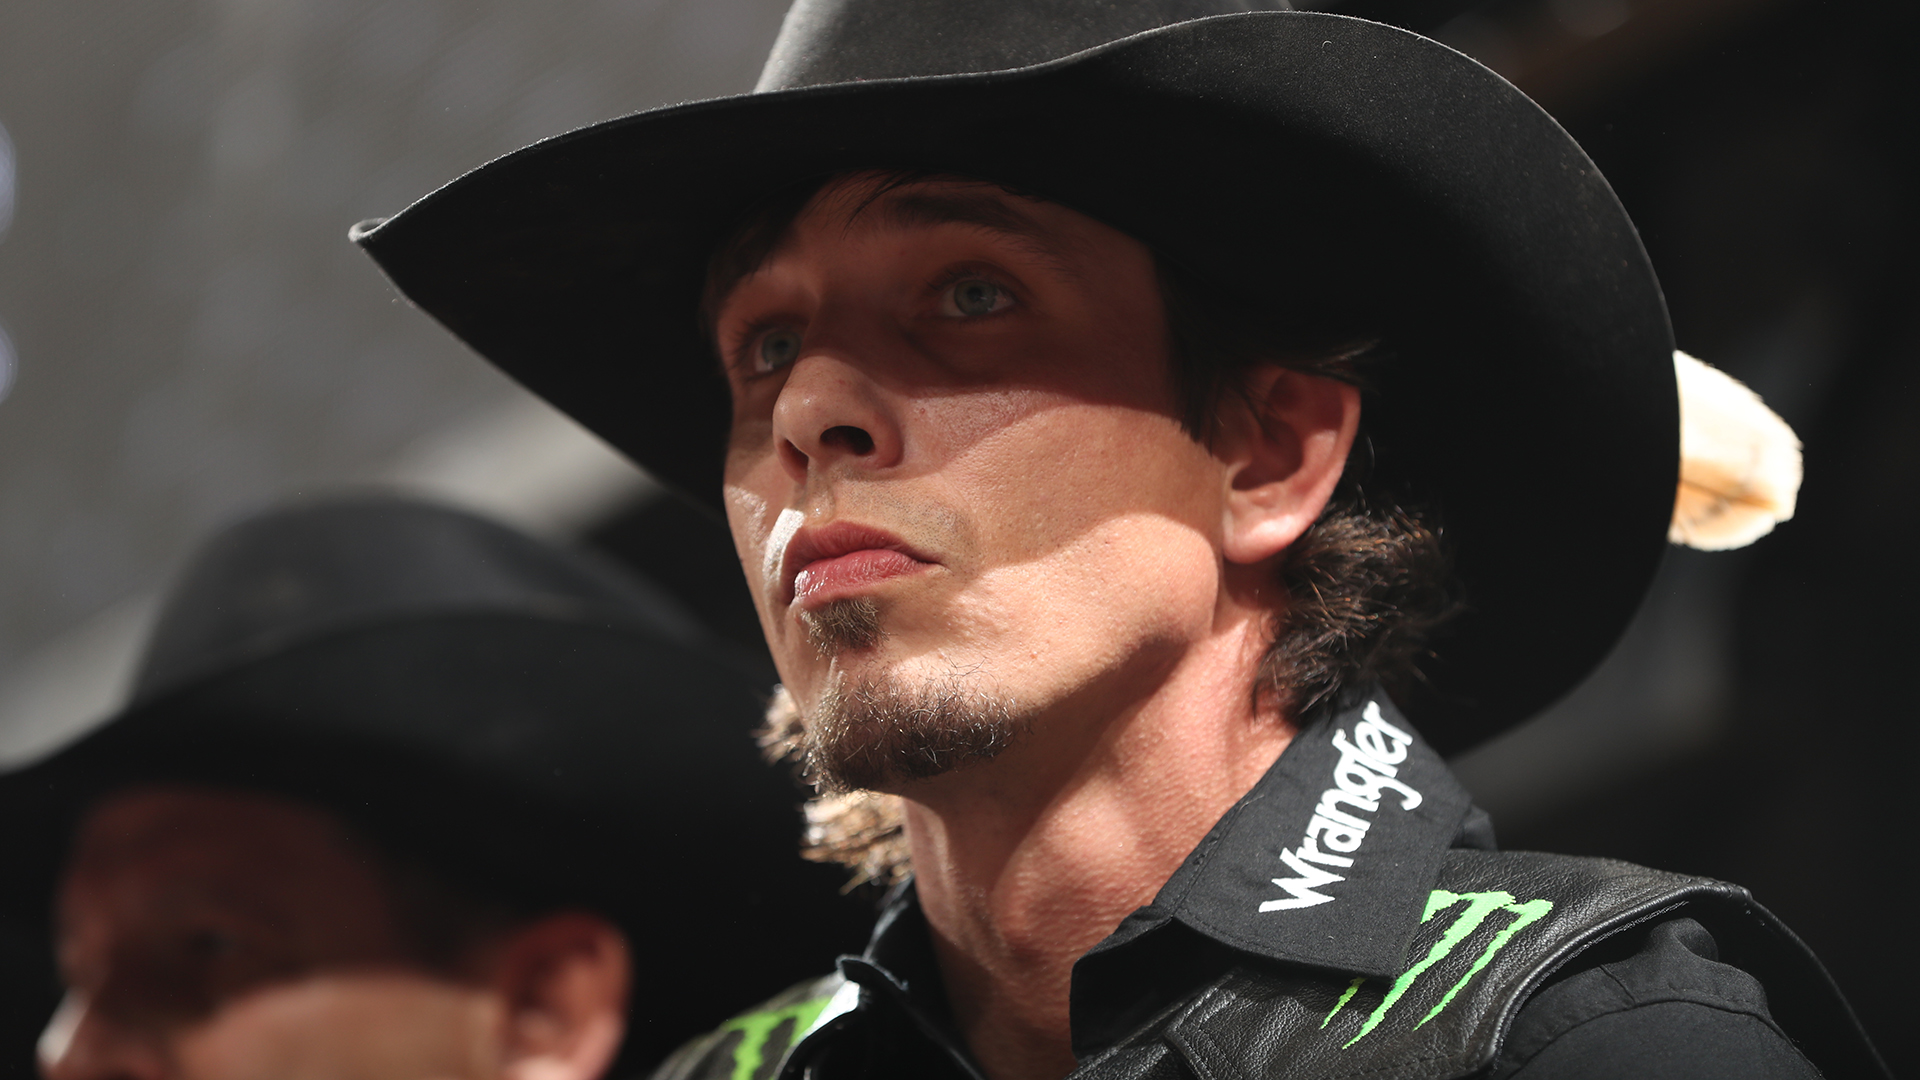 Mauney accepts role as ultimate team player for Global Cup